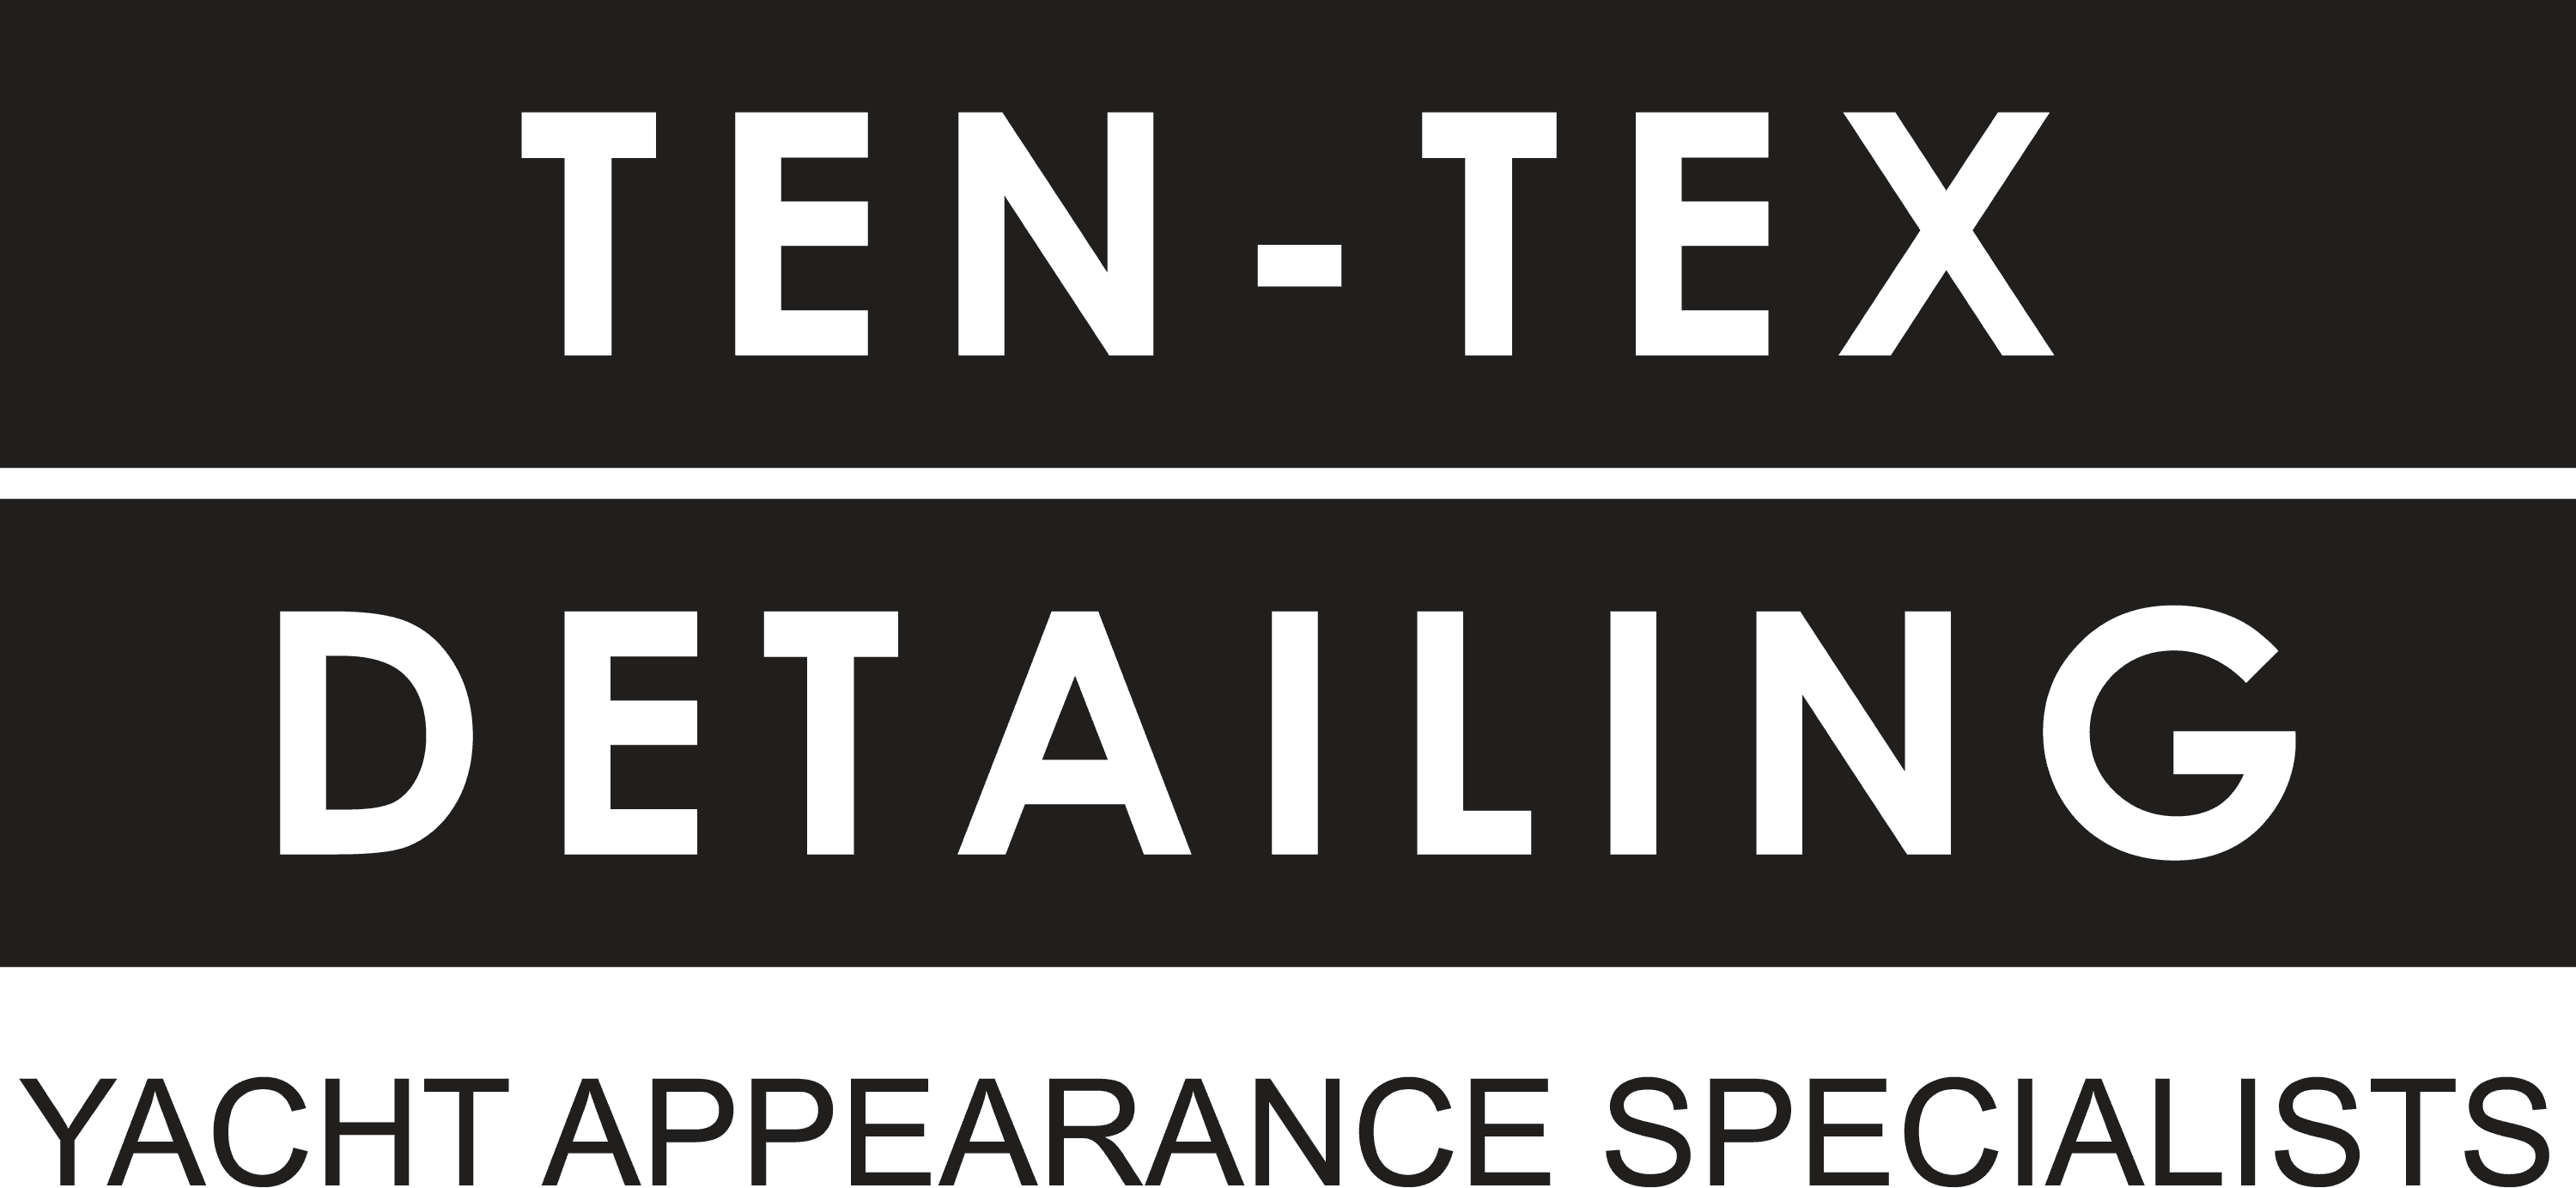 Ten-Tex Detailing Yacht Appearance Specialist